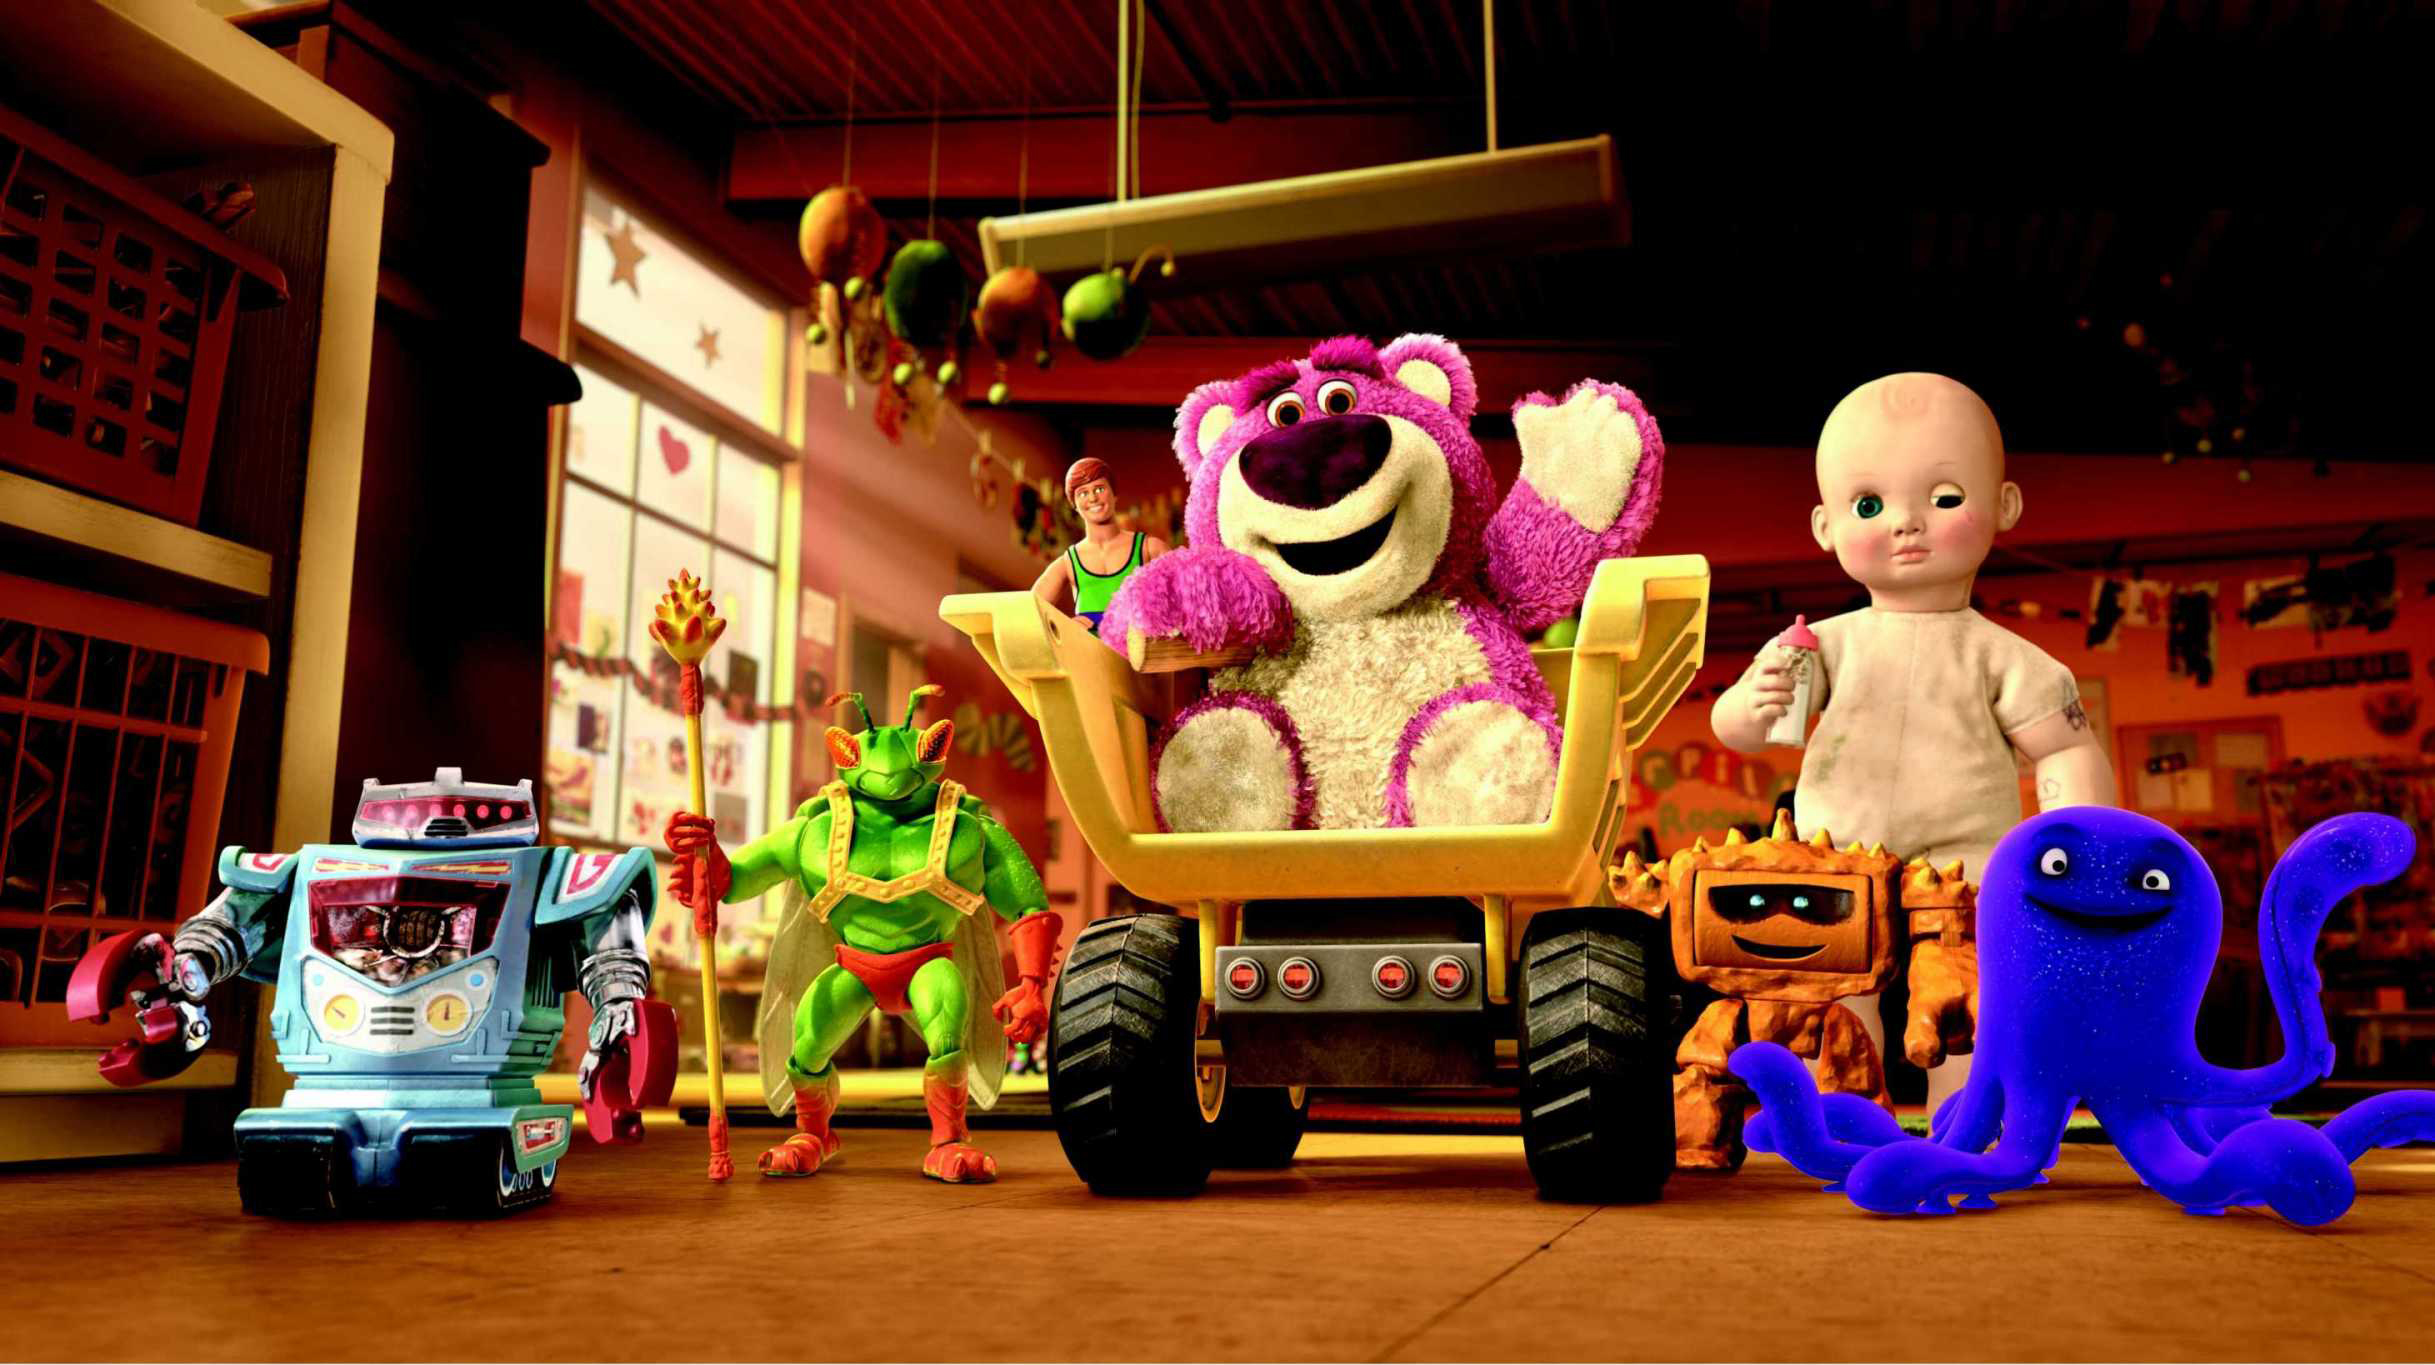 Three Contenders Shutter Island Toy Story 3 And Inception | The Diary Of A Film History Fanatic